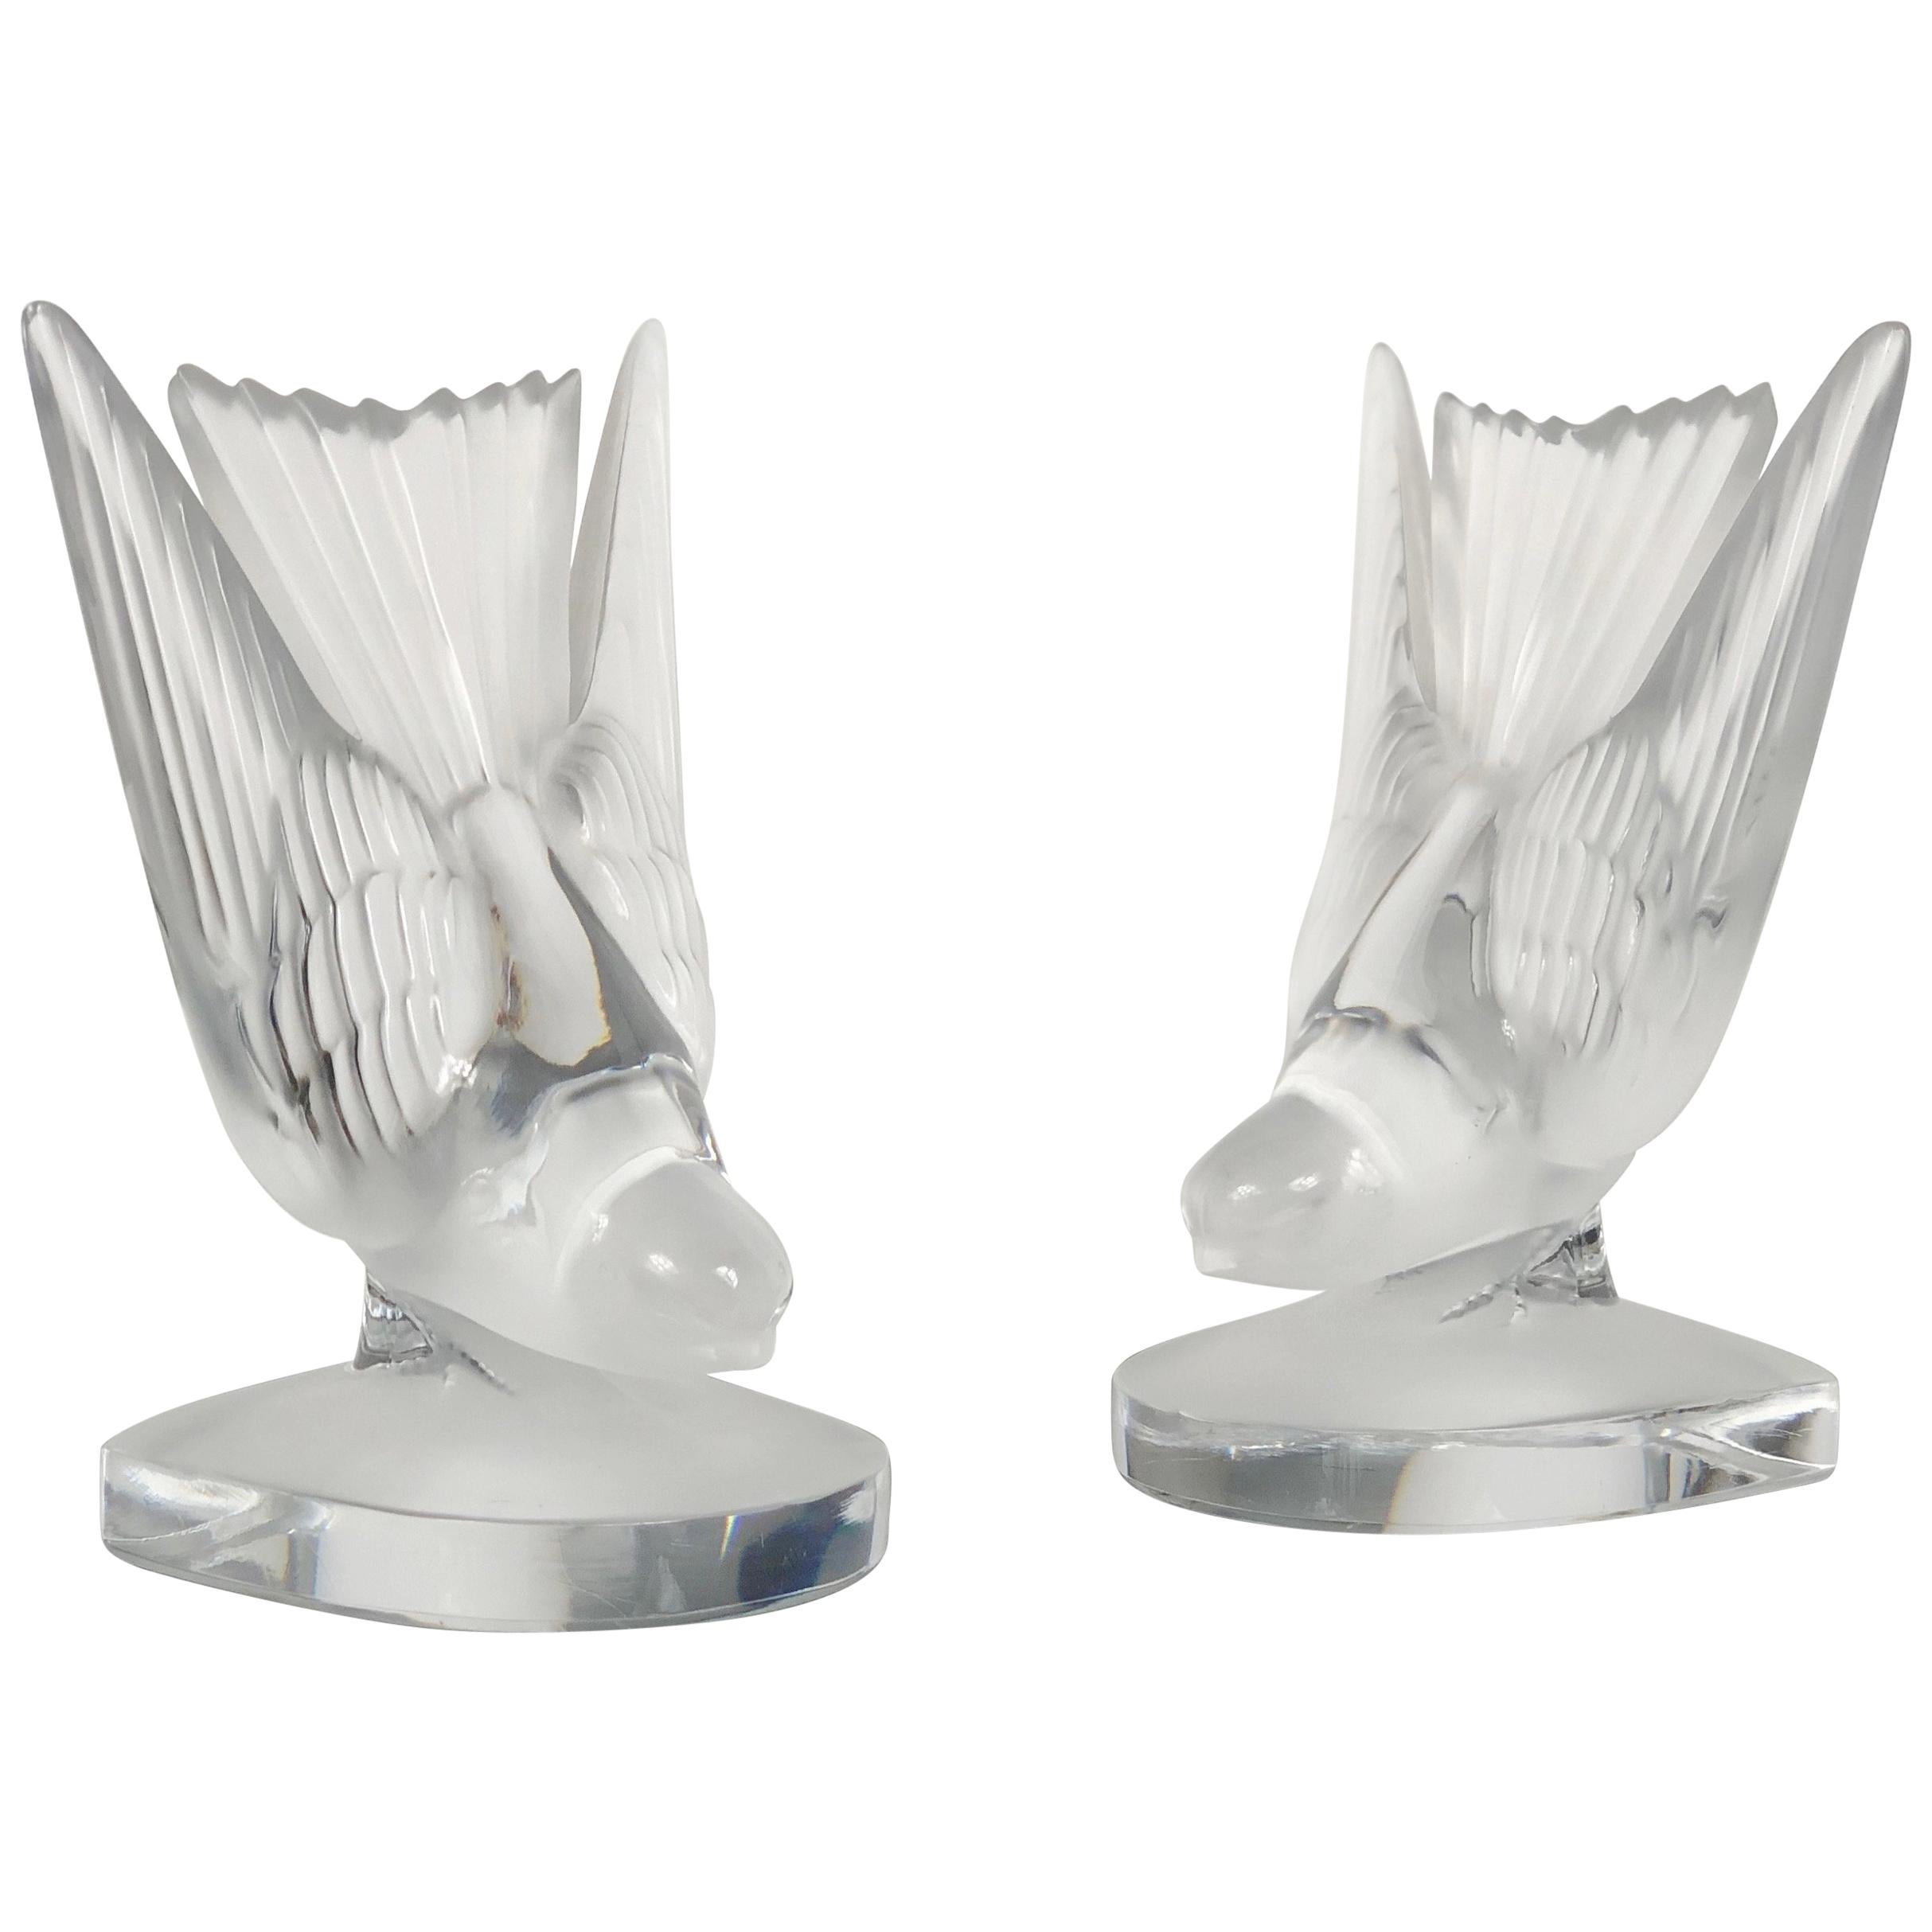 Pair of Lalique Crystal Bird Book Ends Sculpture Paperweight, France